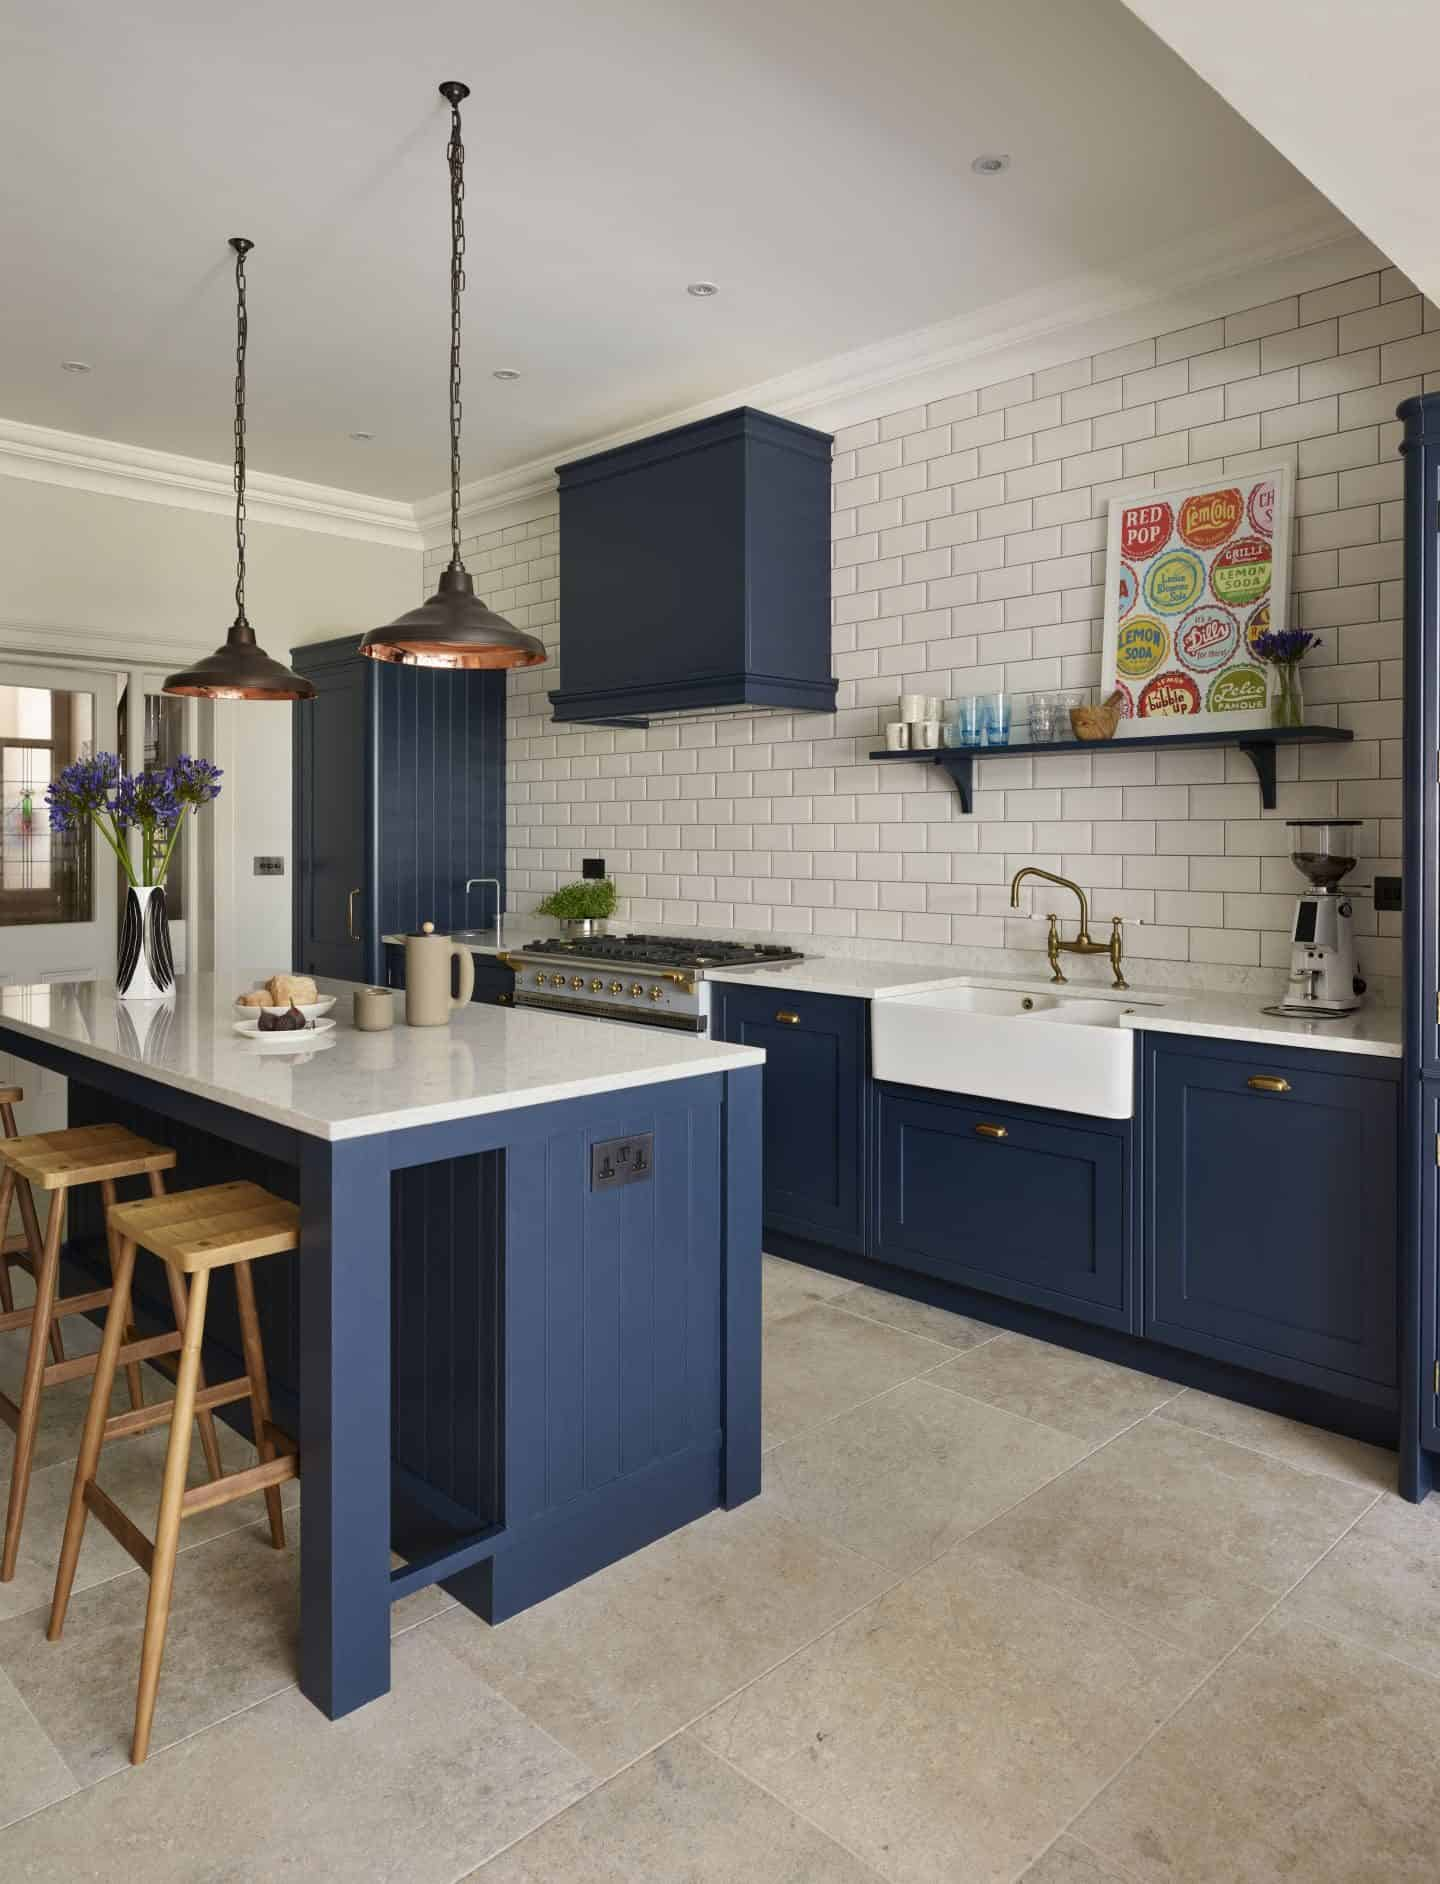 This Holkham inspired kitchen by Davonport is hand-painted using Bond Street by Mylands, set against the crisp backdrop of white worktops and metro tiles